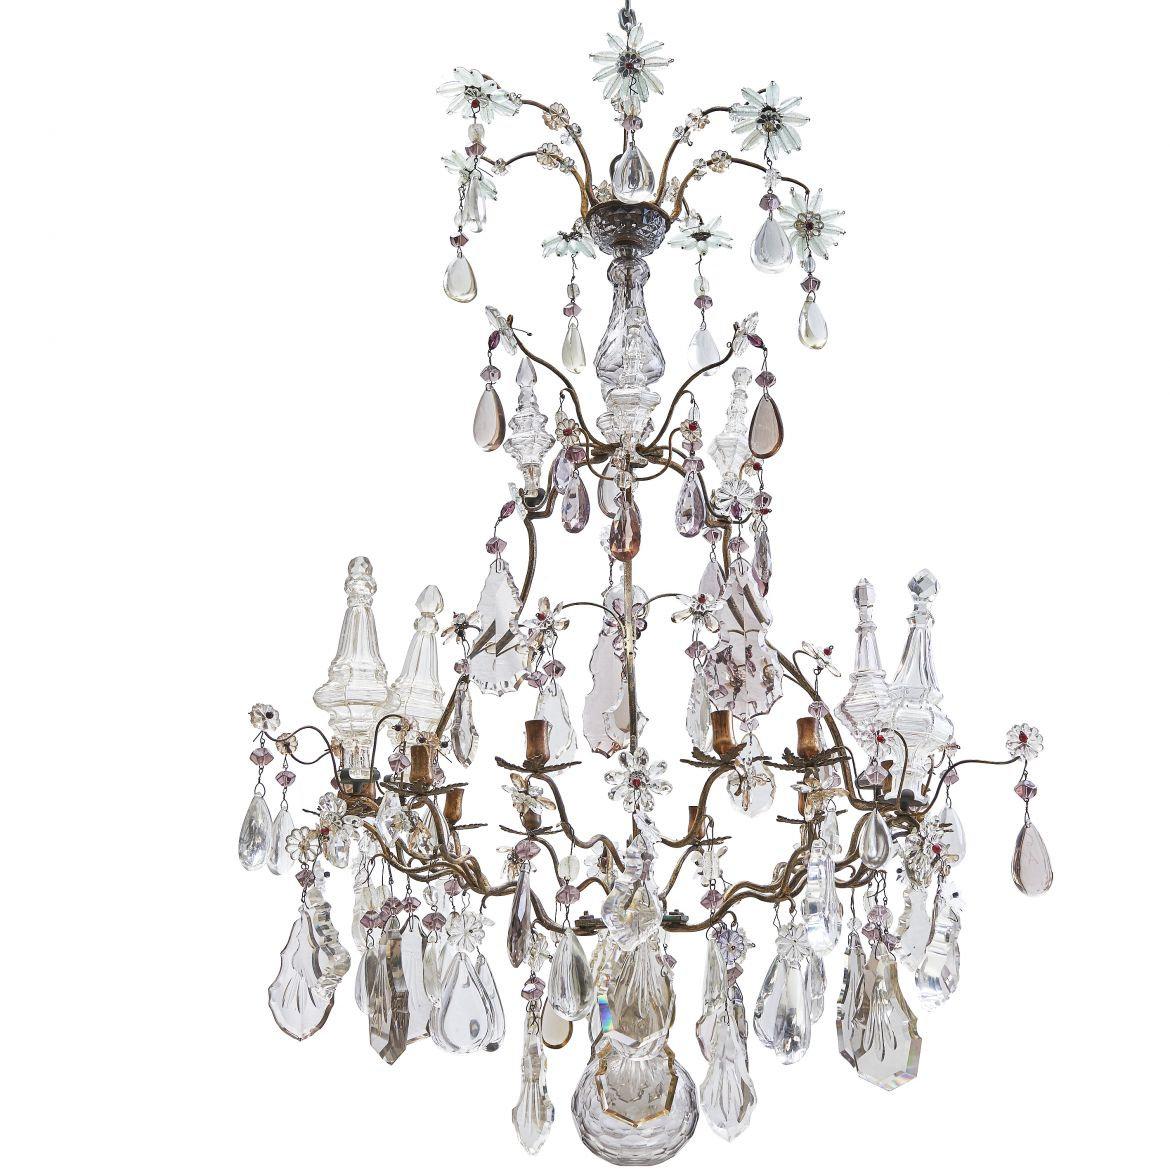 Chandelier With Clear & Amethyst Drops